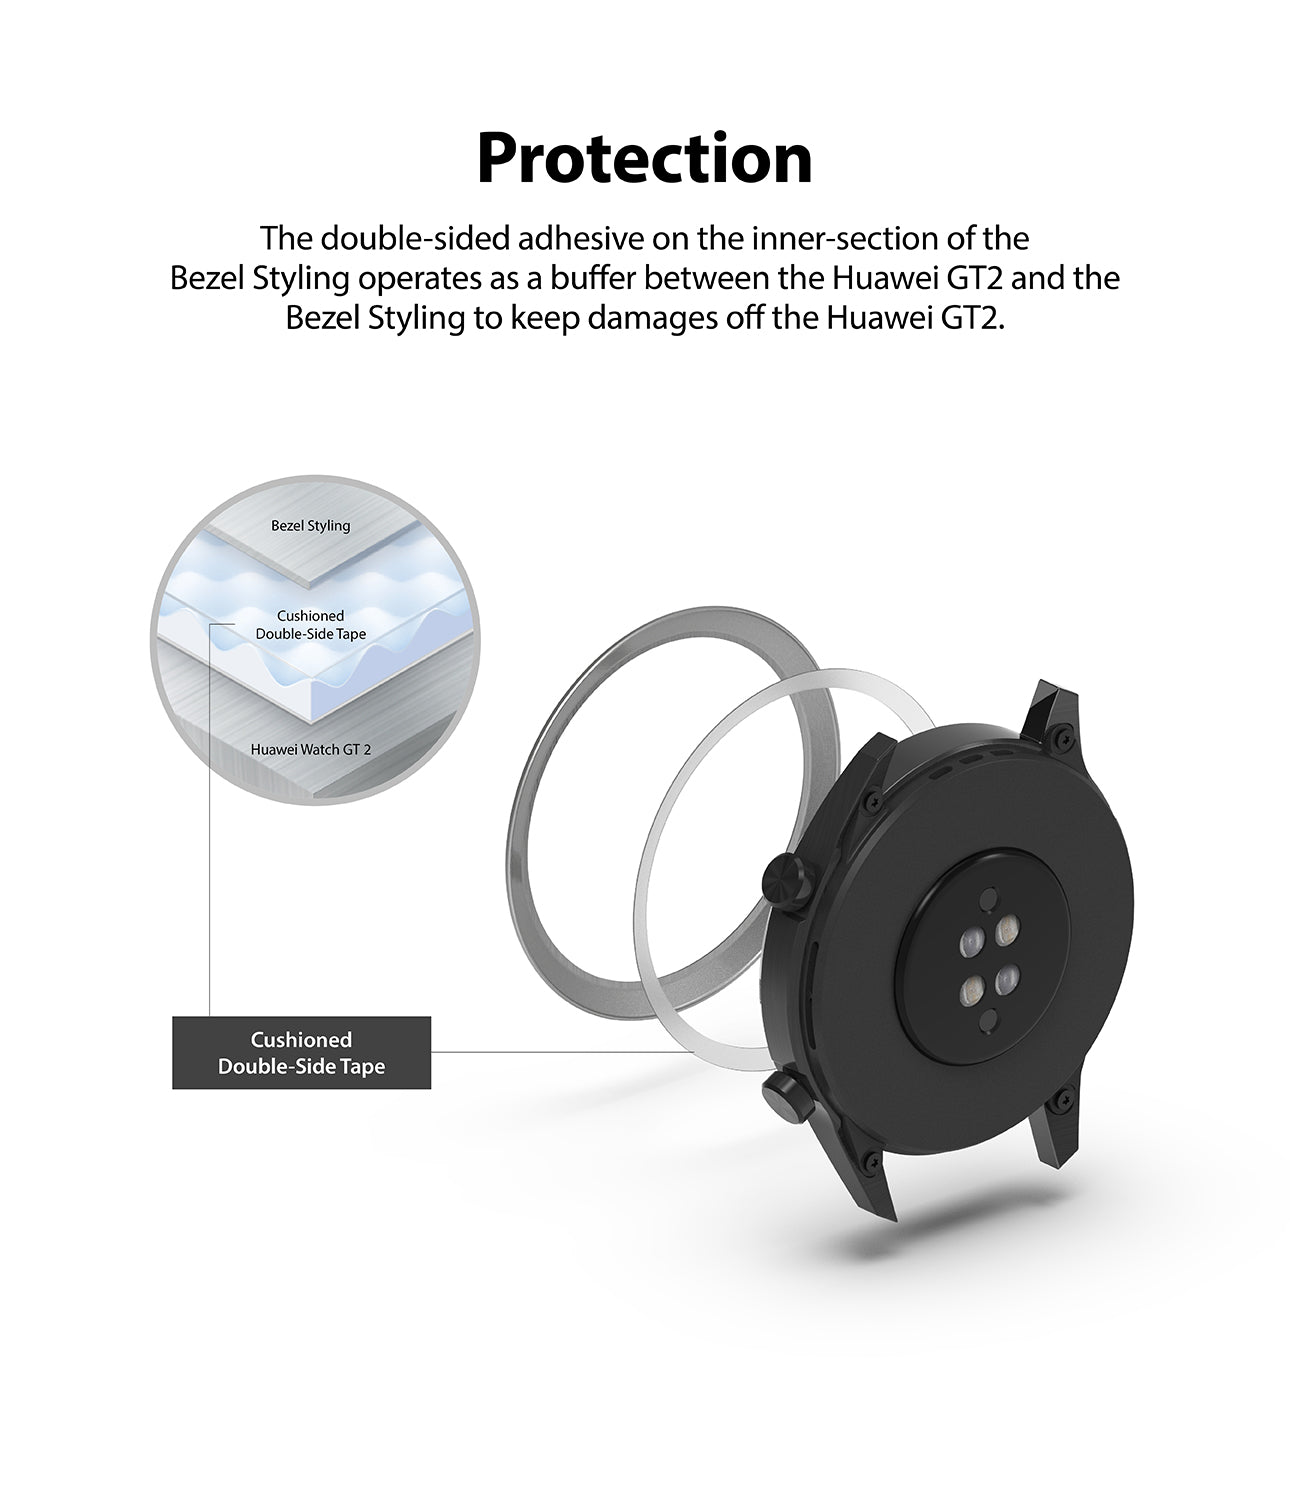 protection - double sided adhesive on the inner section of the bezel styling operates as a buffer